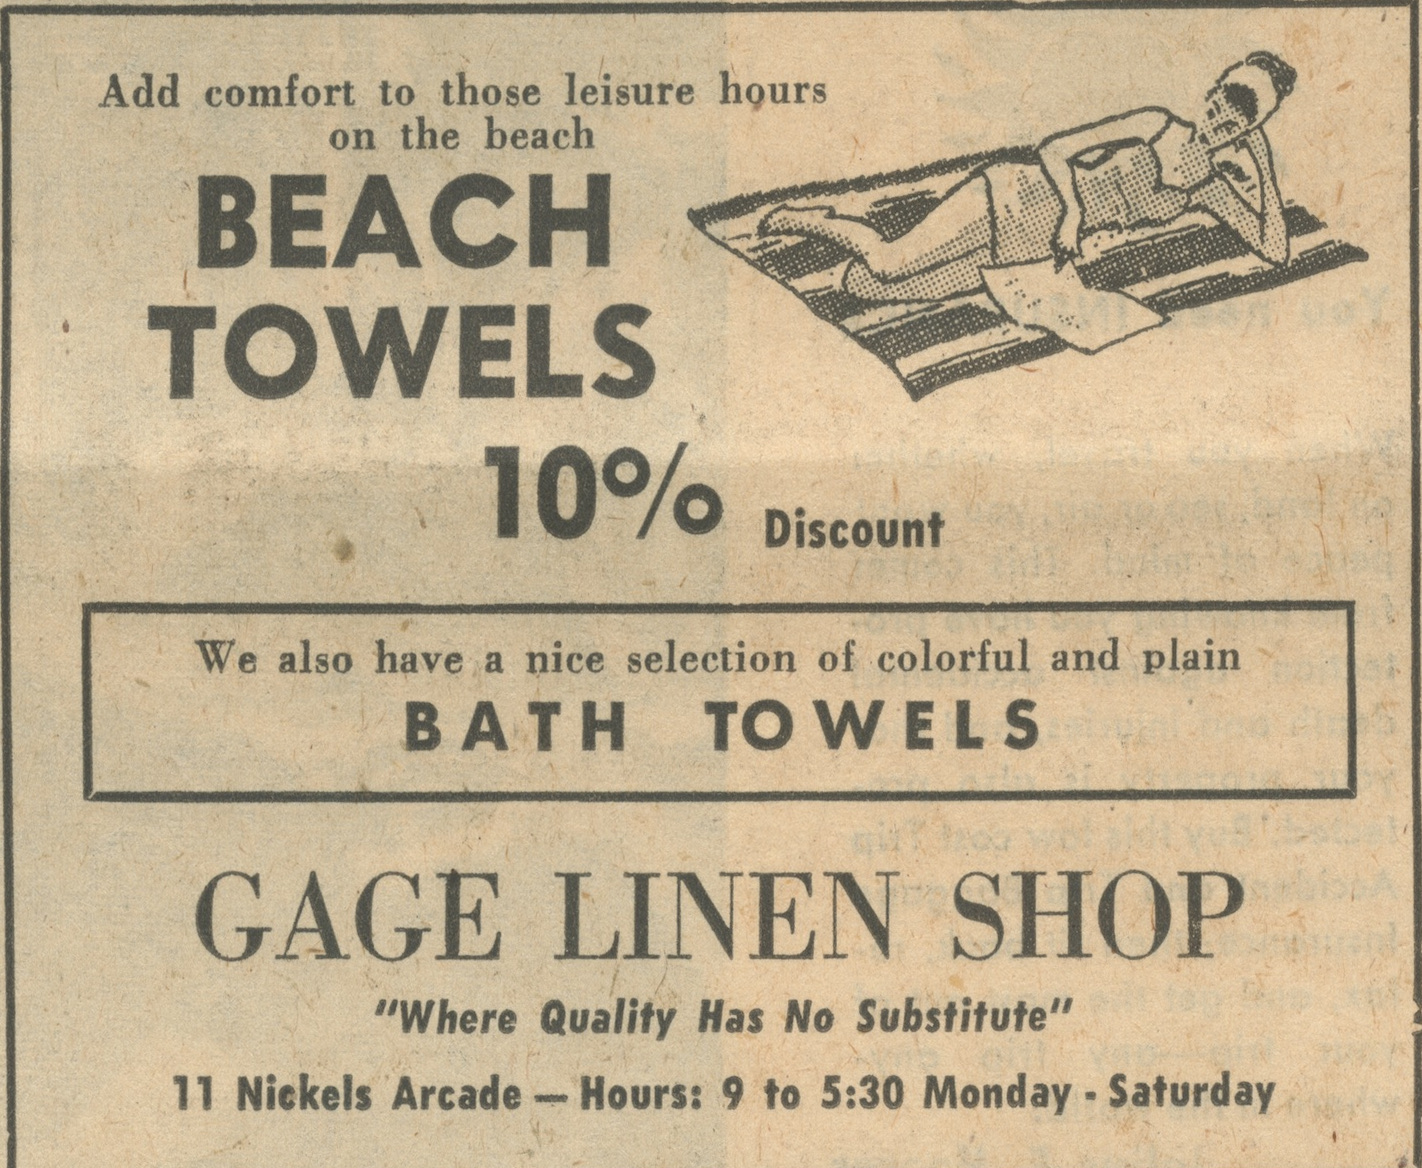 Gage Linen Shop image